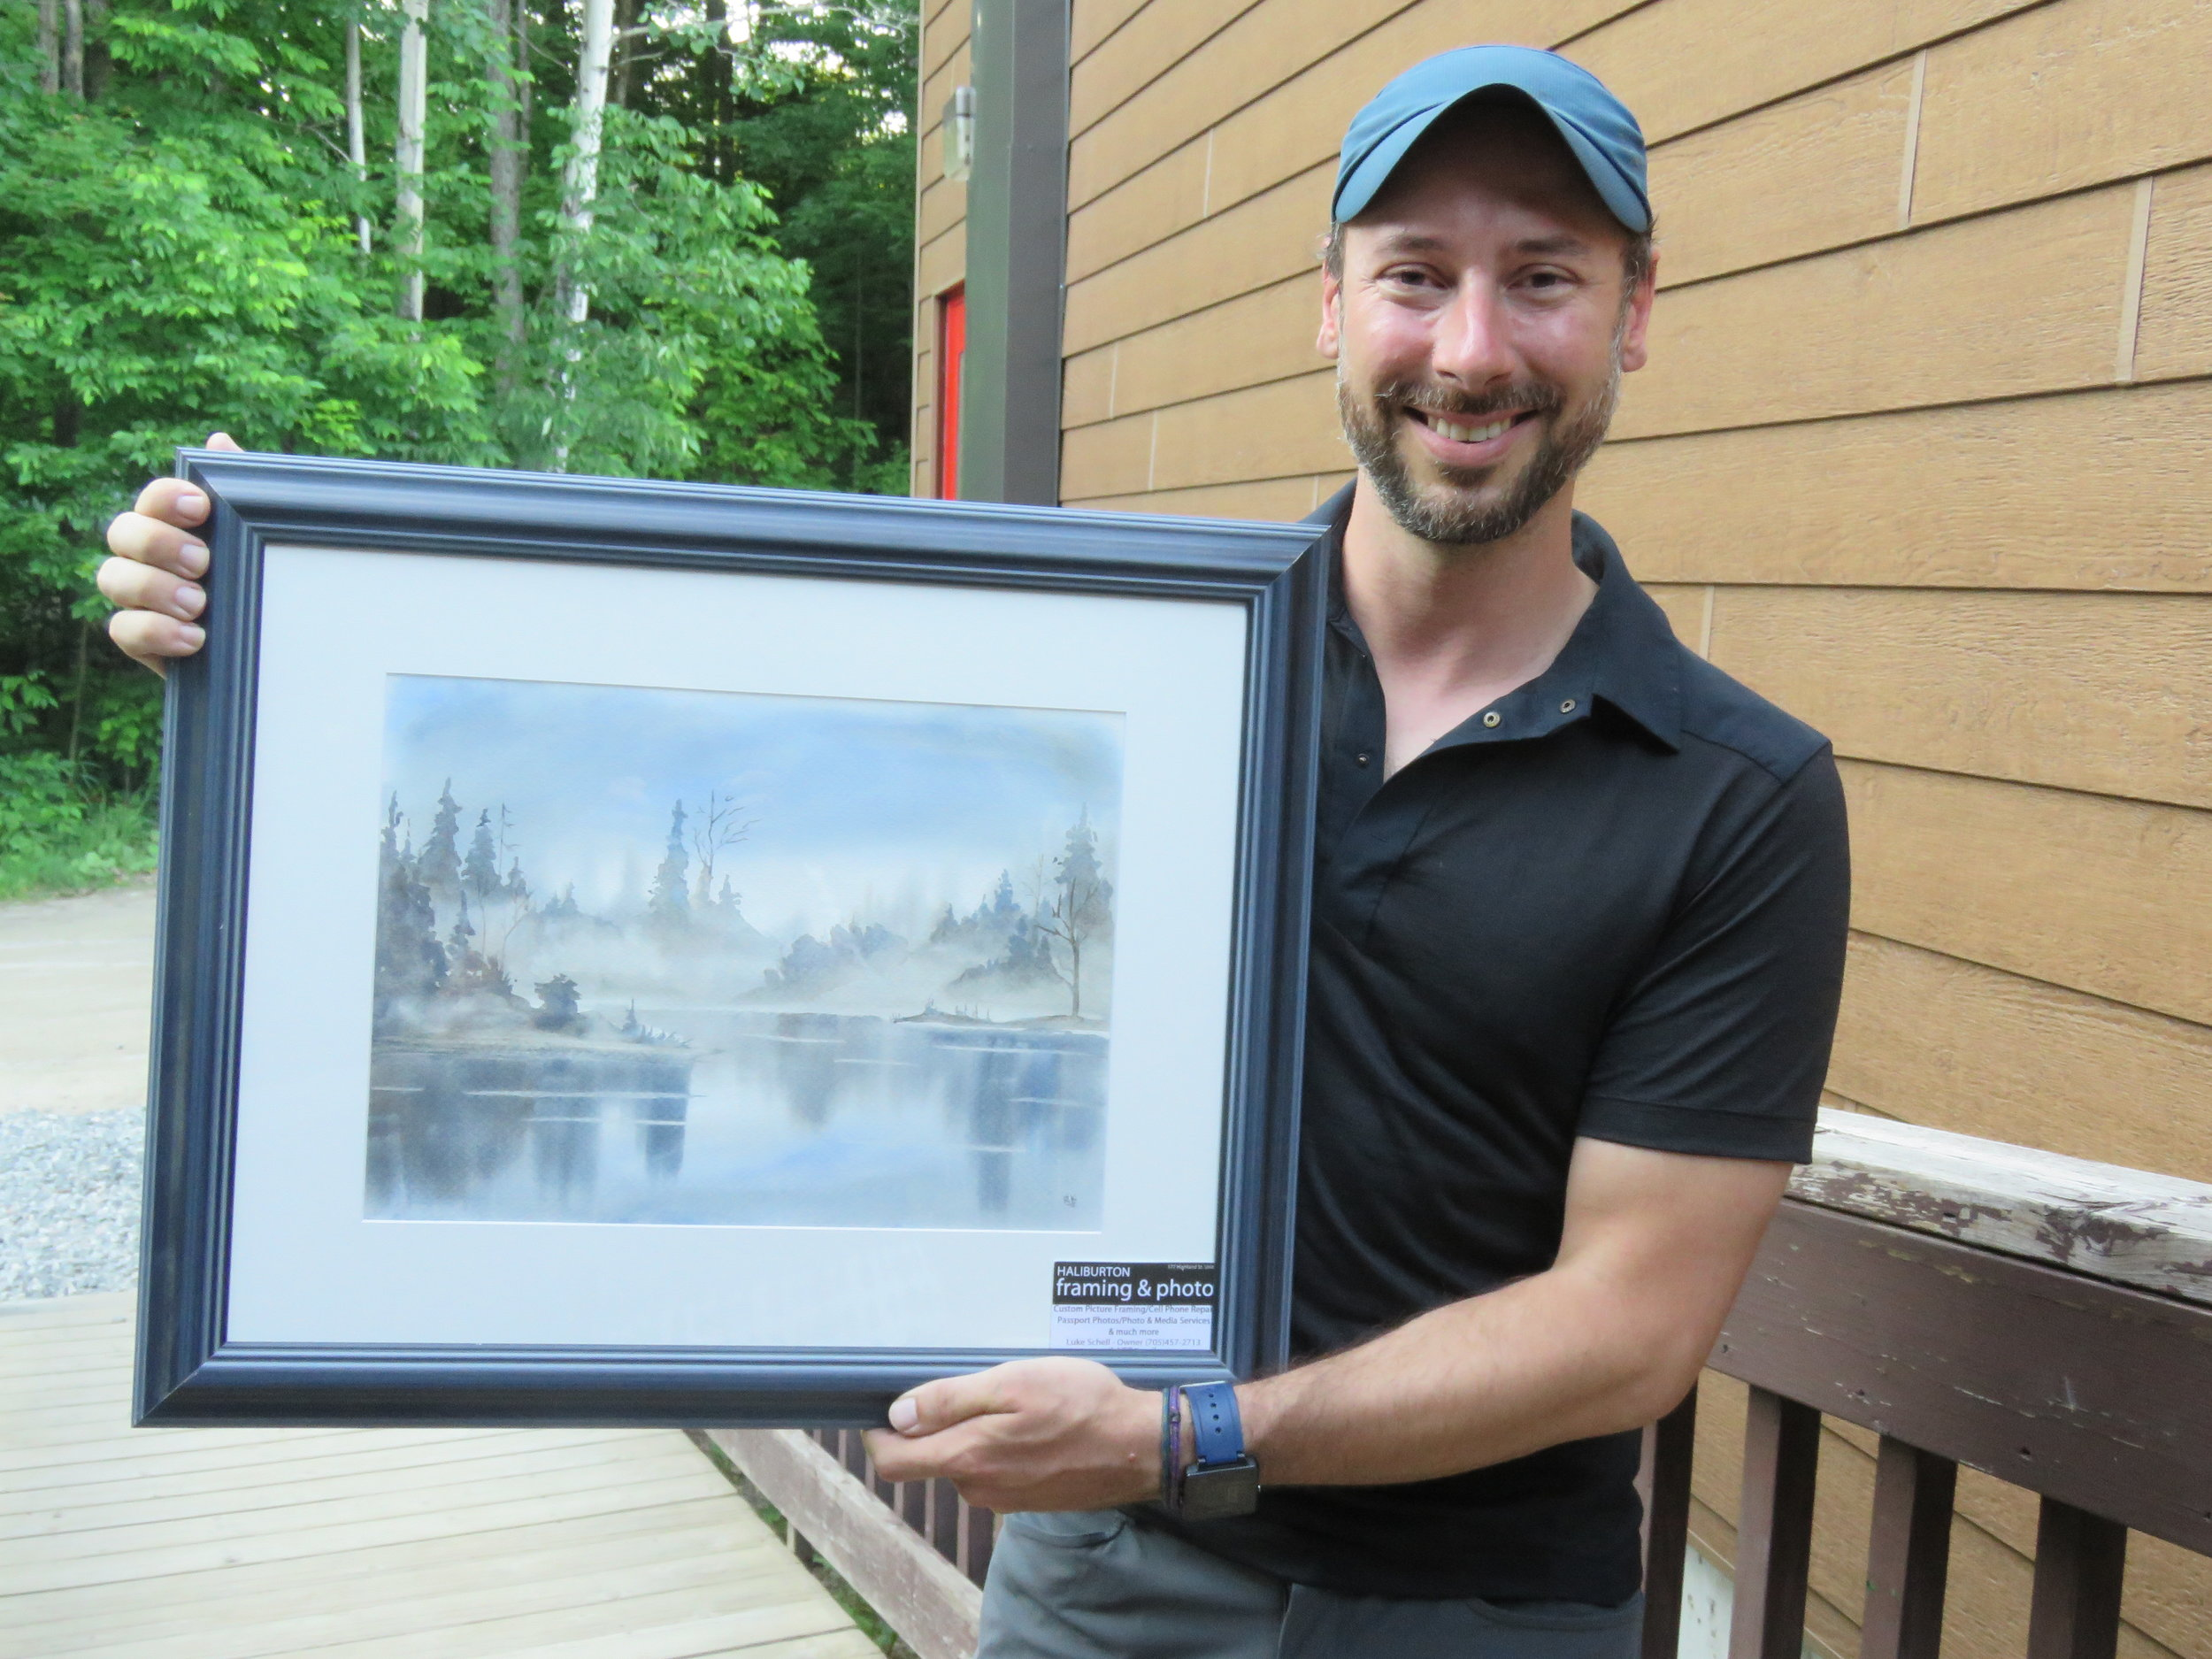 Ryan donated this beautiful watercolour painting to Camp Wanakita's fundraising auction!